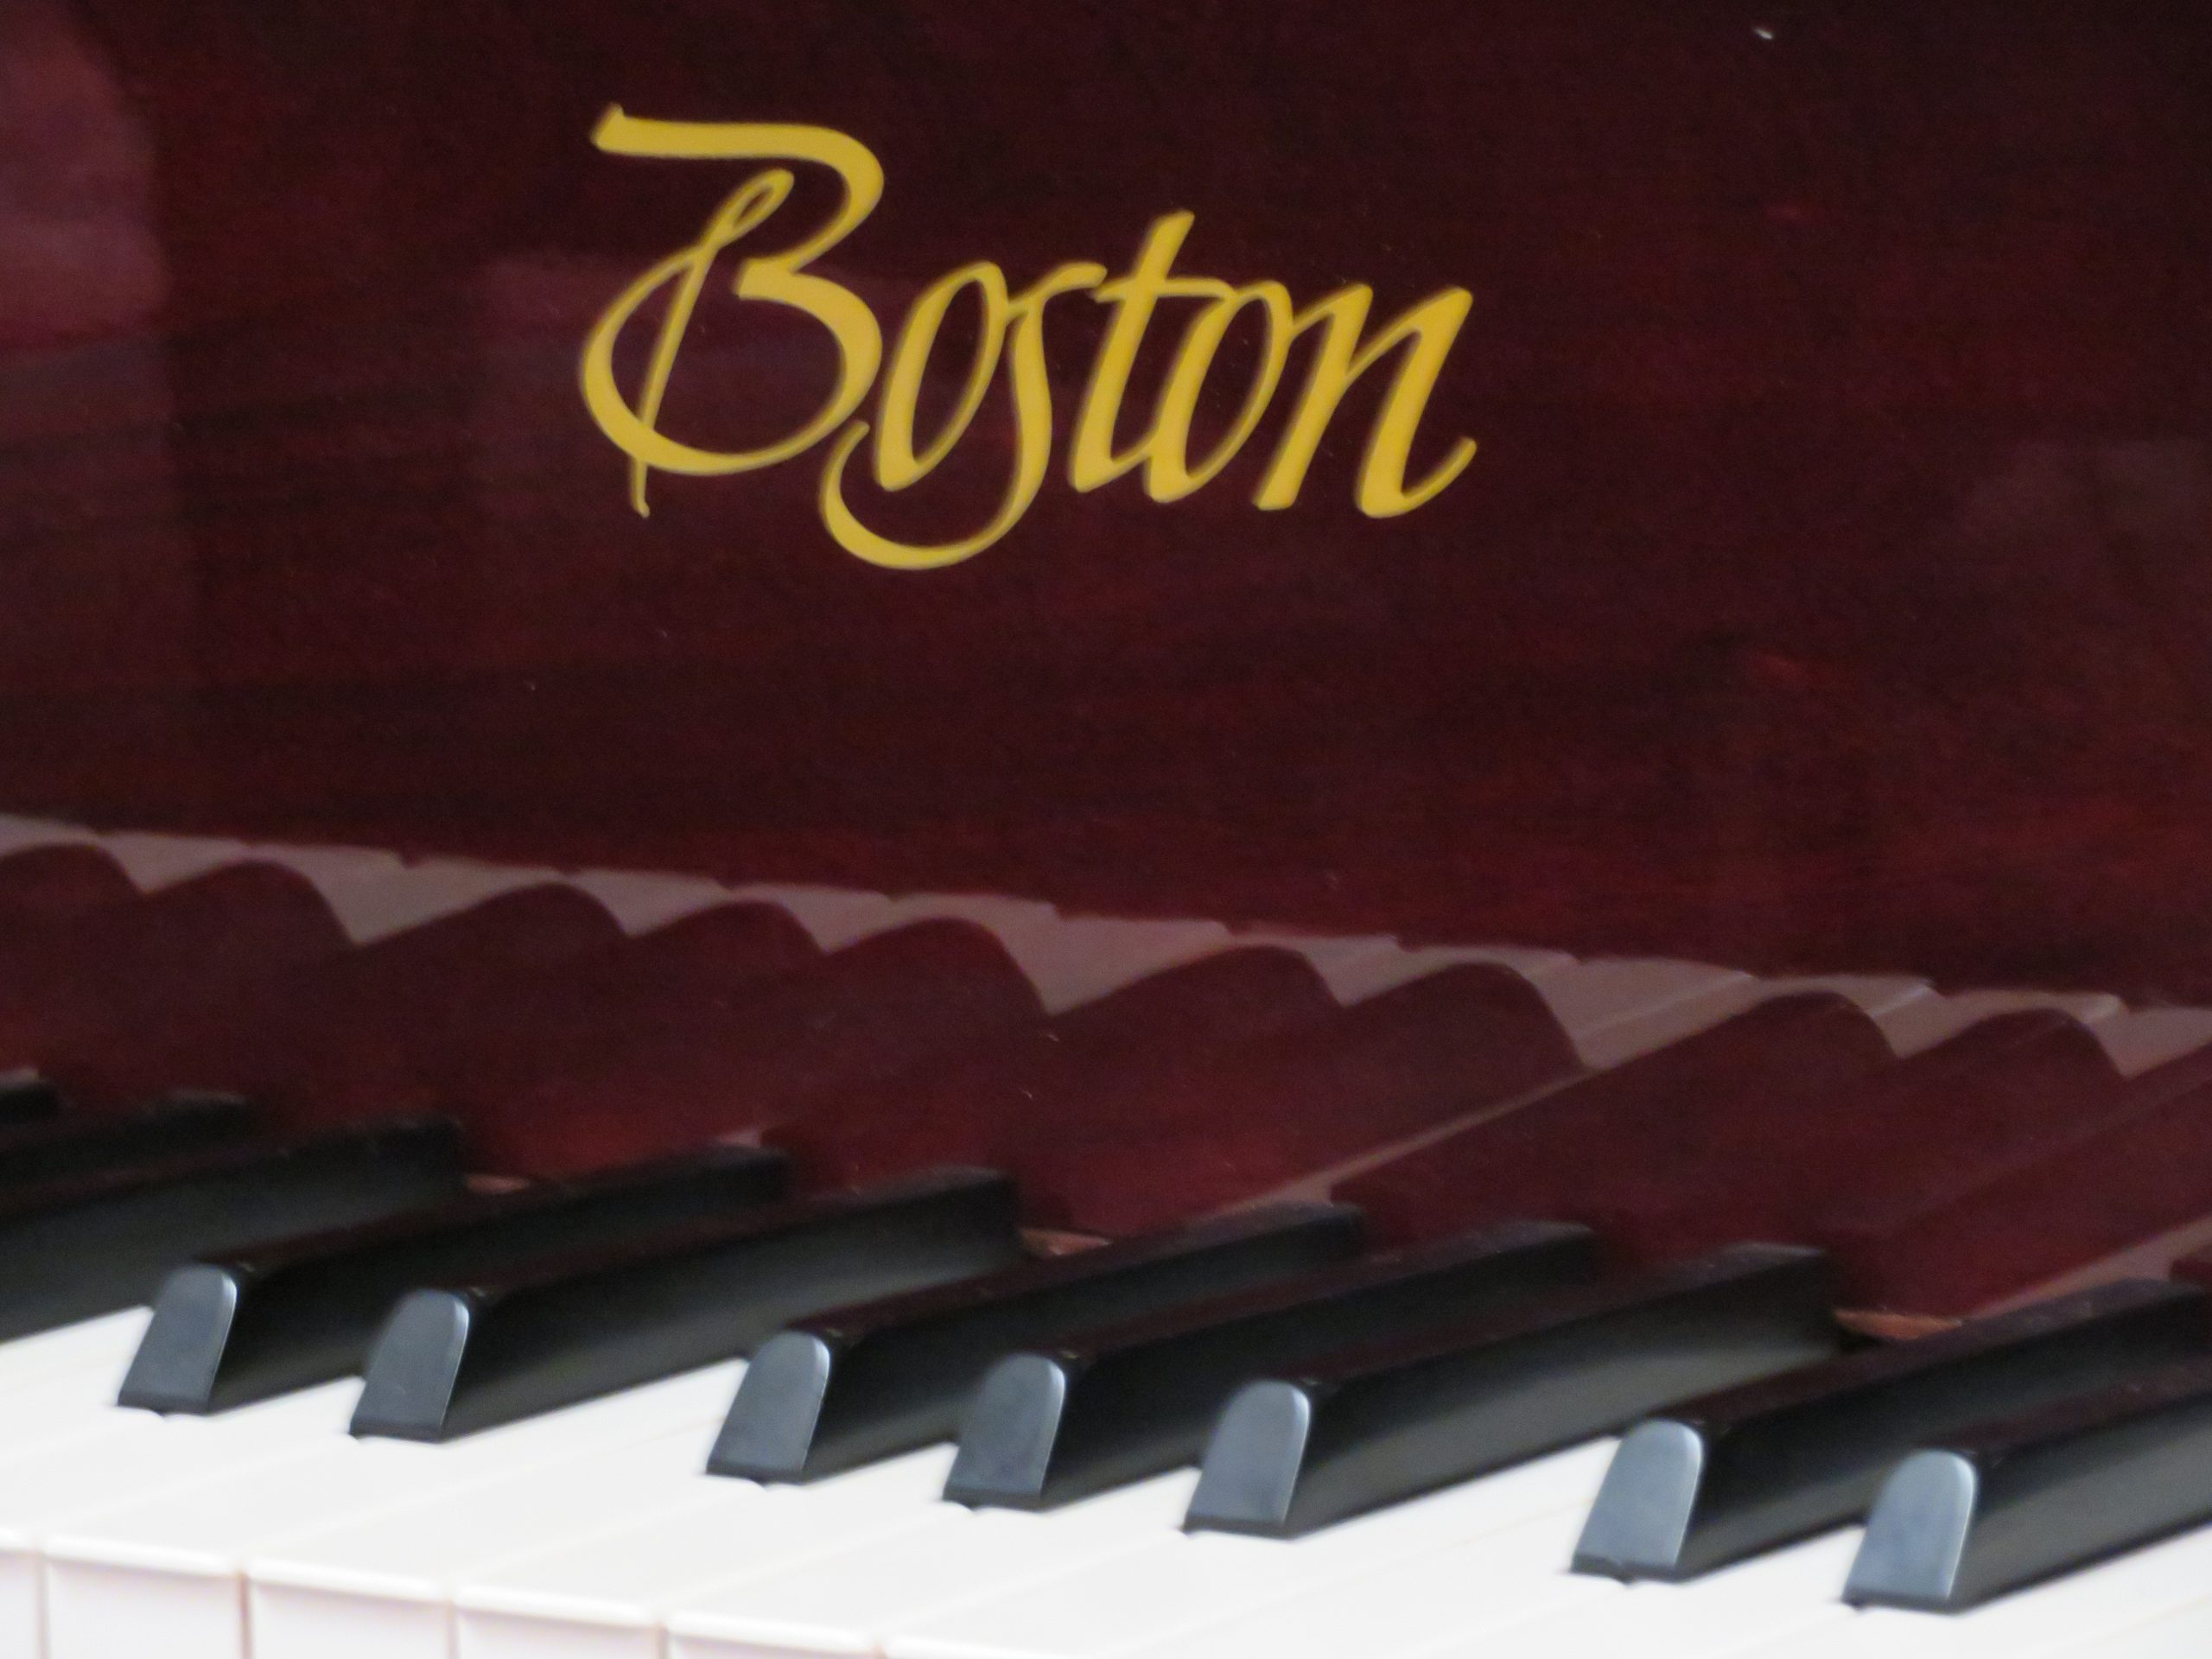 """12446-<br><font color=black><b>BOSTON 5'11"""" Grand Piano By Steinway & Sons</b></font> Rarely Played Immaculate! Polished Mahogany</b></font> <br><font color=blue><b>Click Picture for """"Live Video""""</b></font>"""